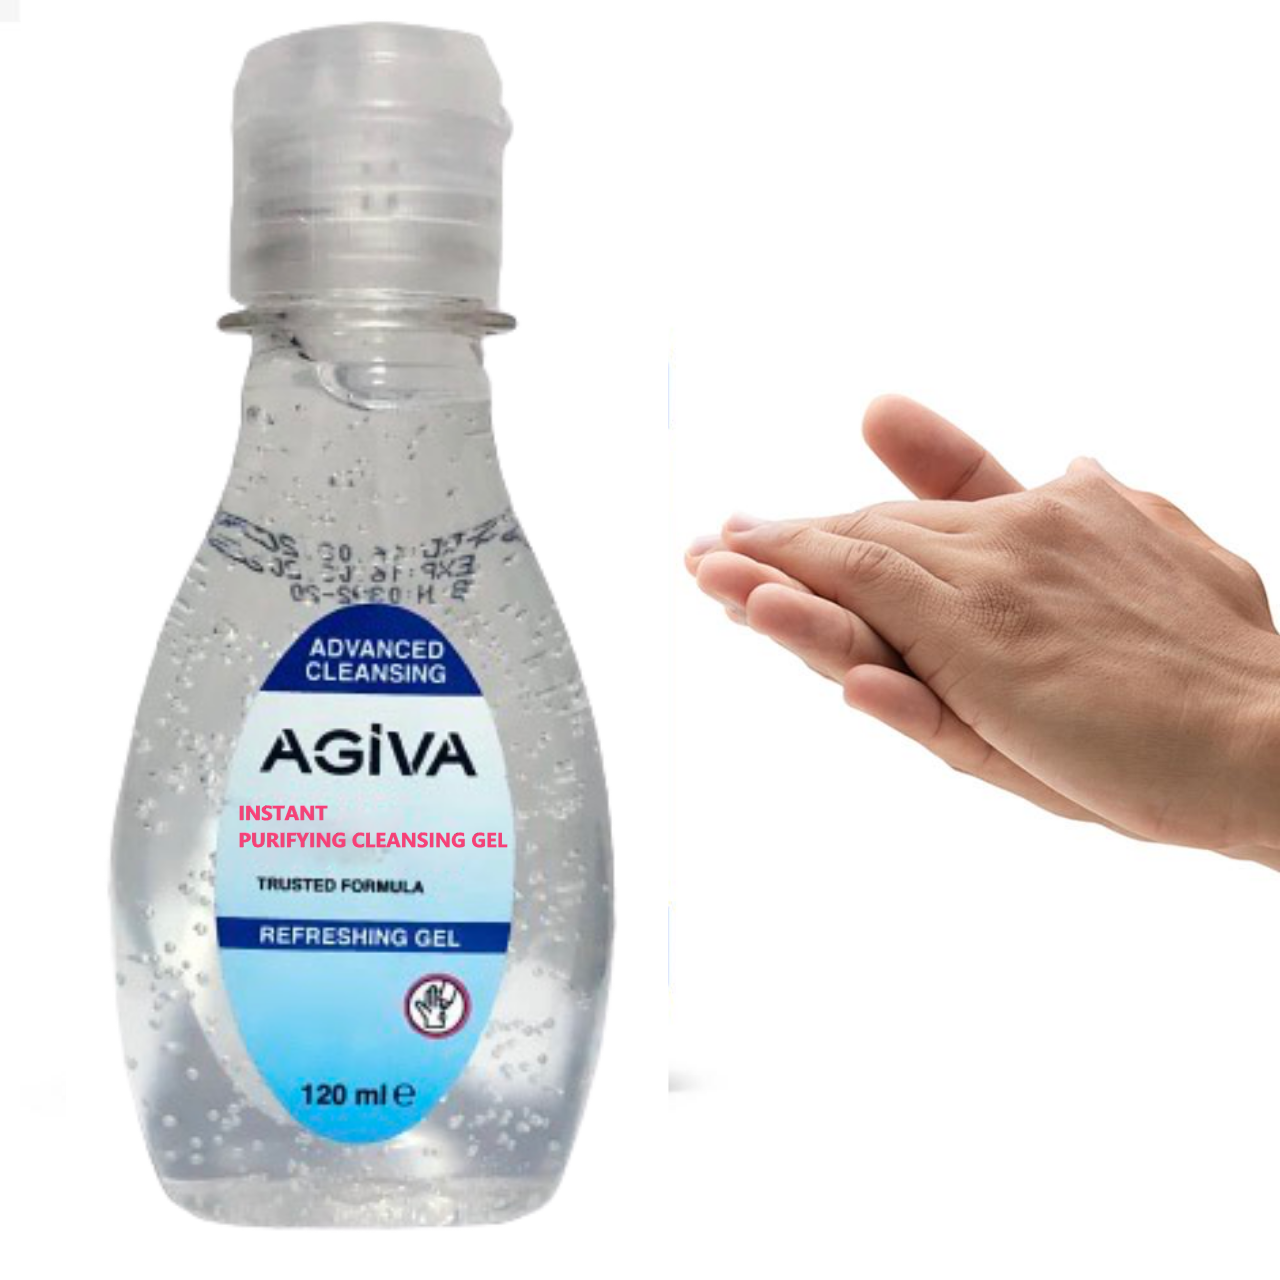 Agiva 120ml Instant Purifying Cleansing Gel by  Generise